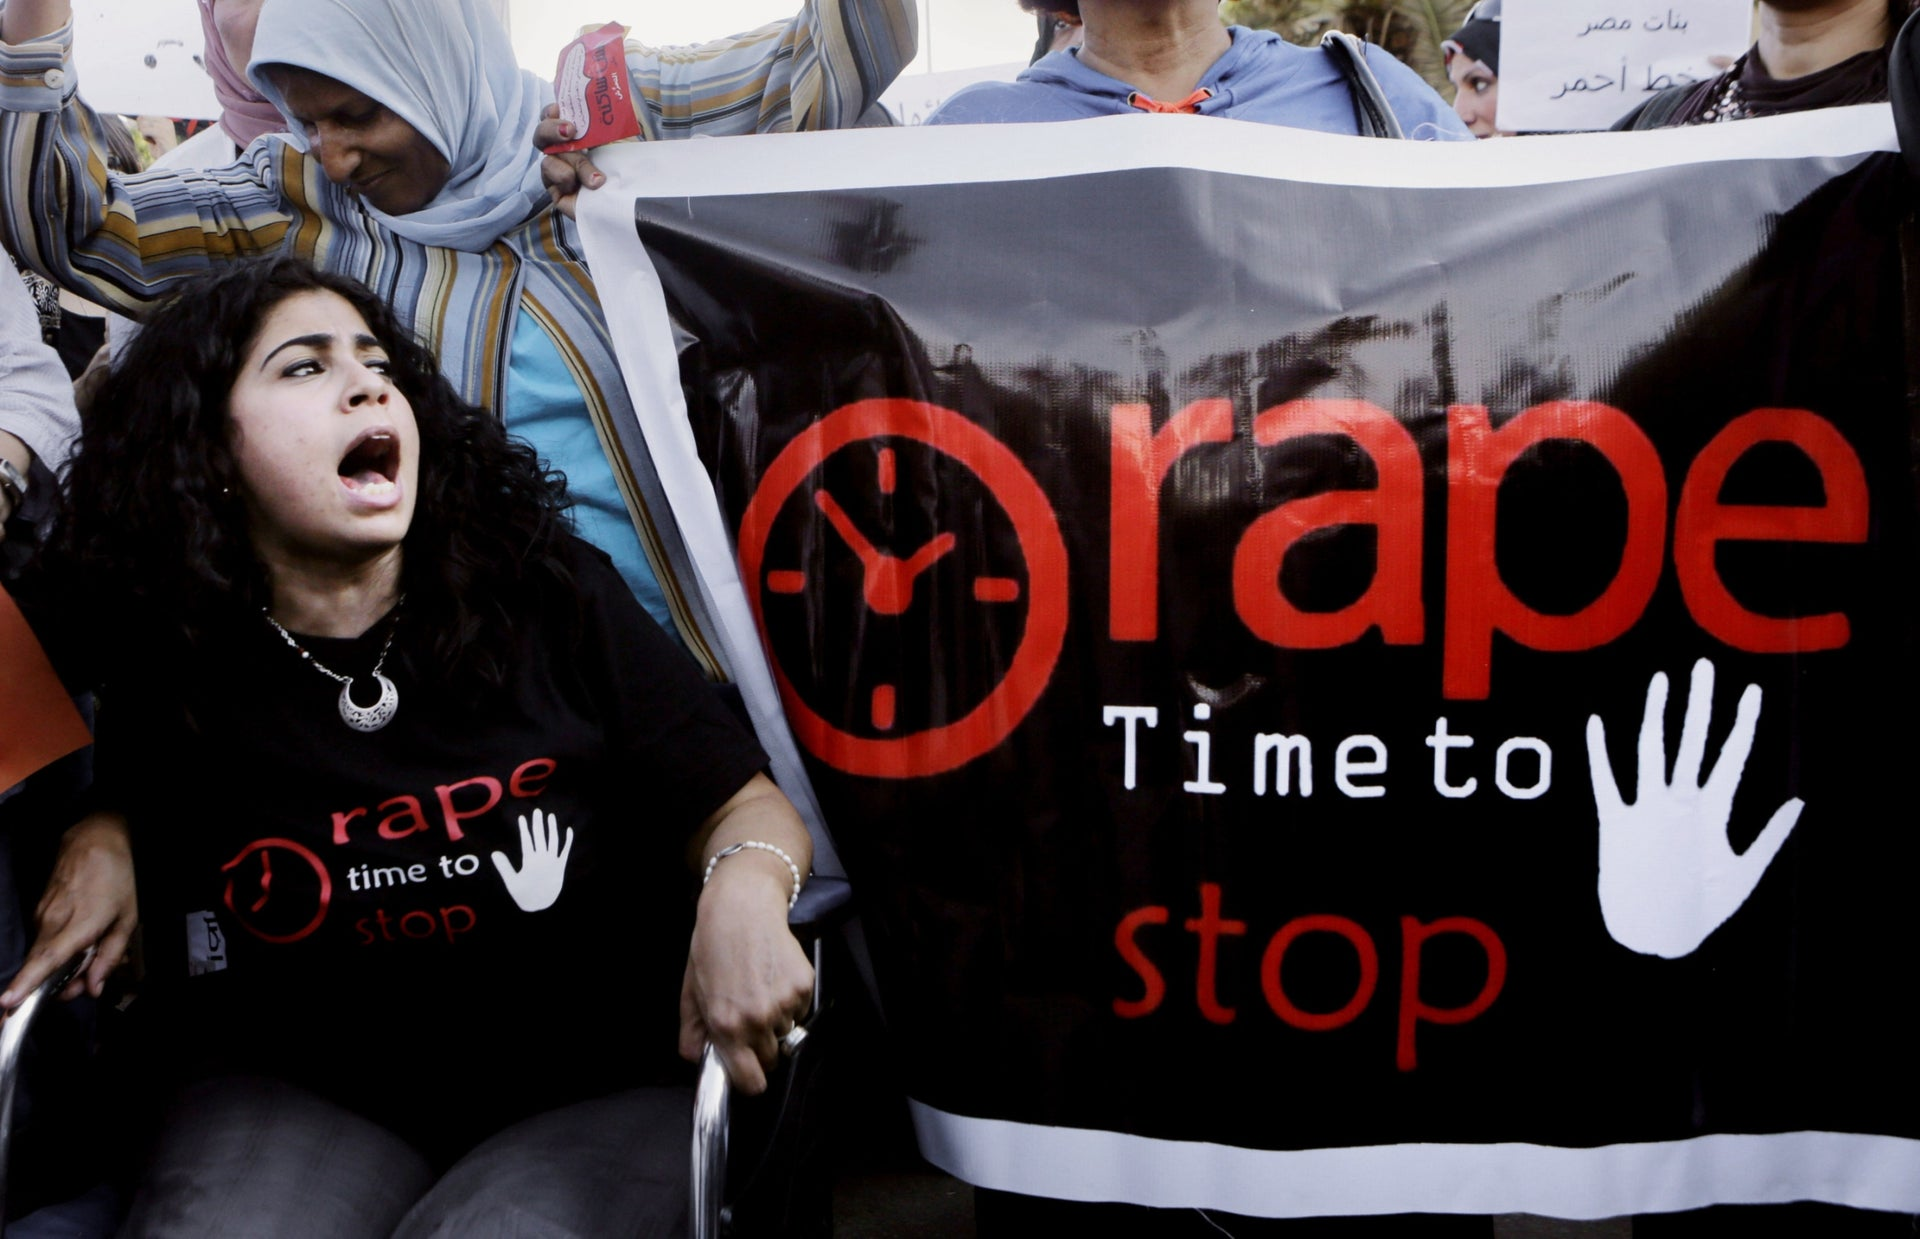 Protest against sexual harassment, Cairo, June 14, 2014